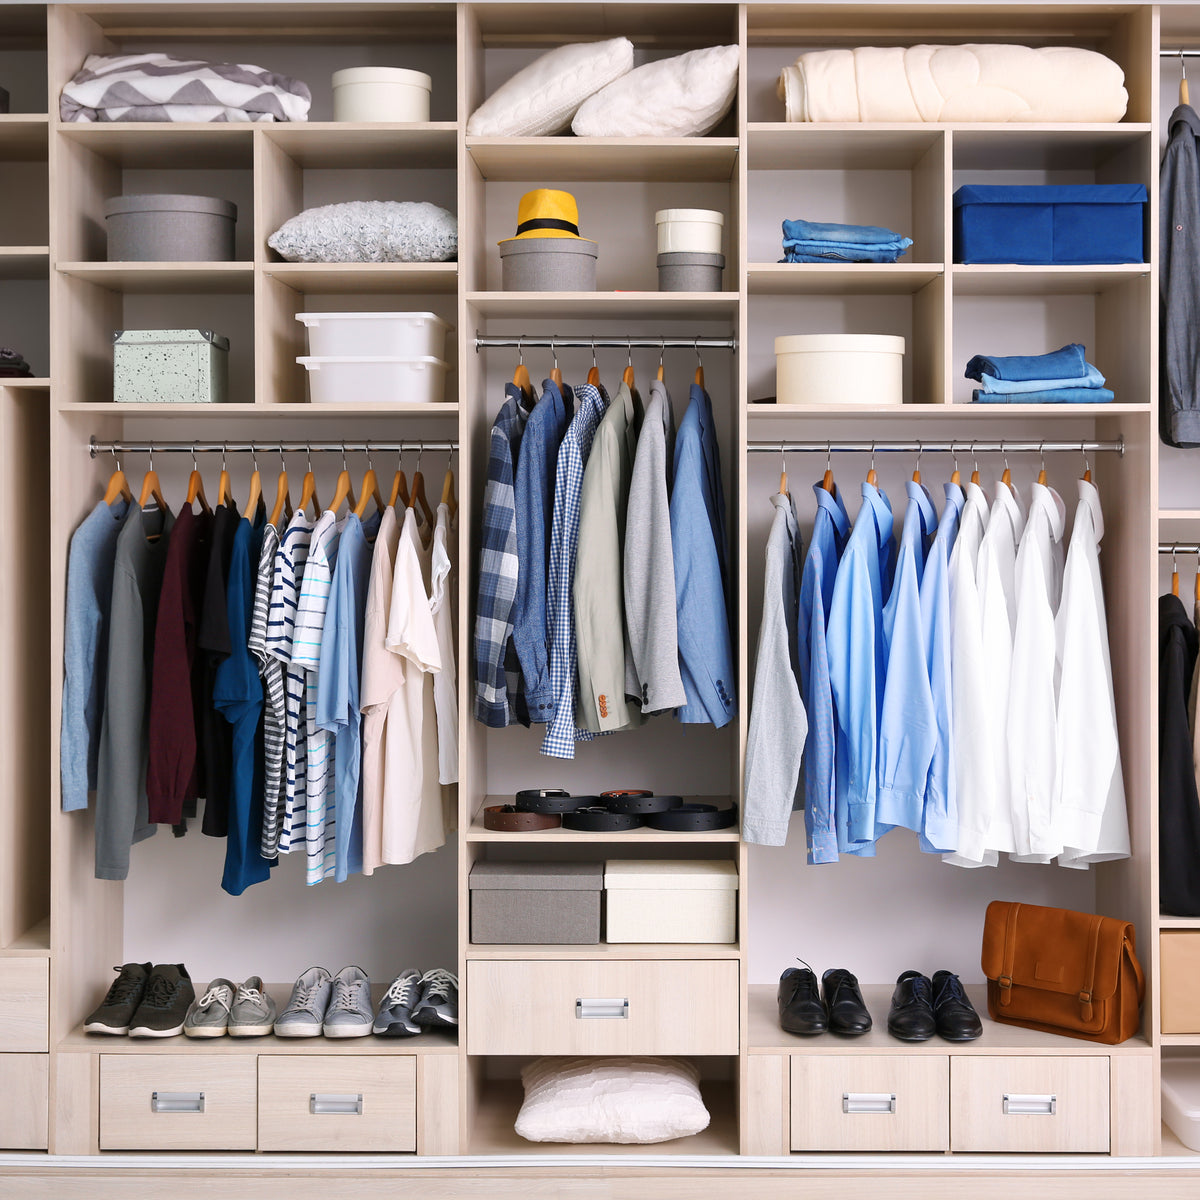 ORGANIZE YOUR CLOTHING GAME